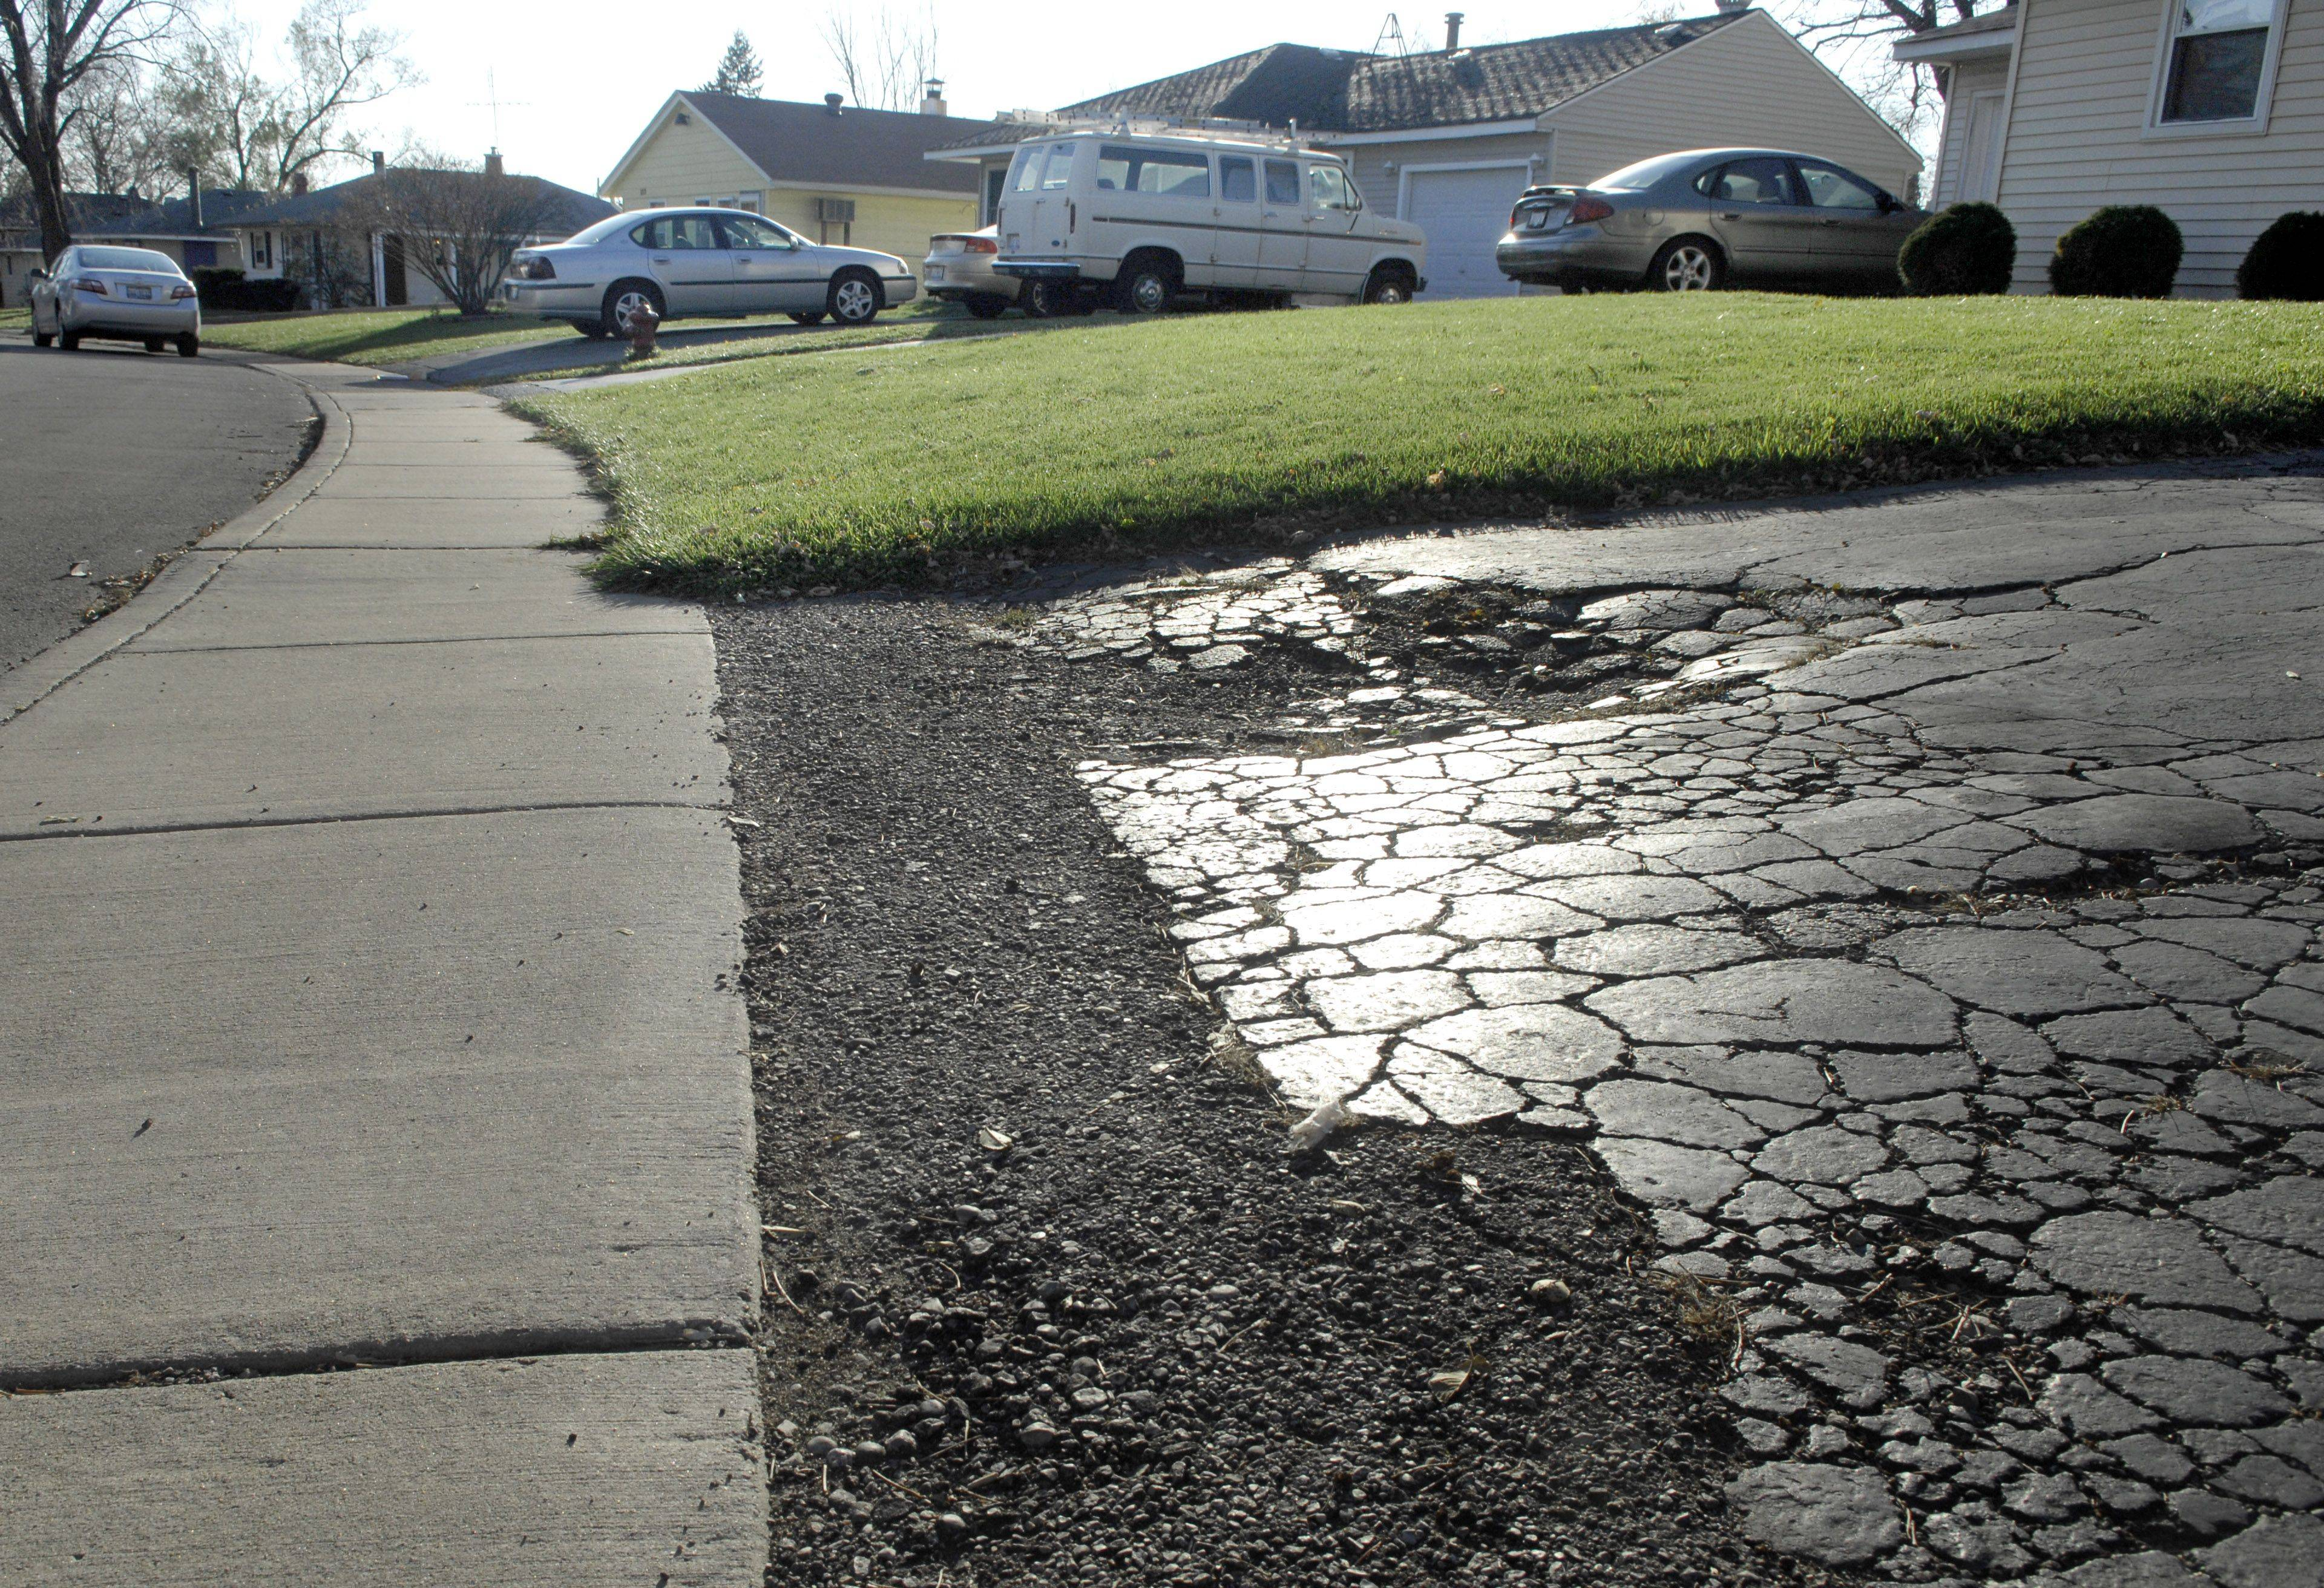 A driveway on Chippewa Circle in Carpentersville has fallen into disrepair. Carpentersville trustees are considering whether to extend the June 2012 deadline on required driveway repaving.